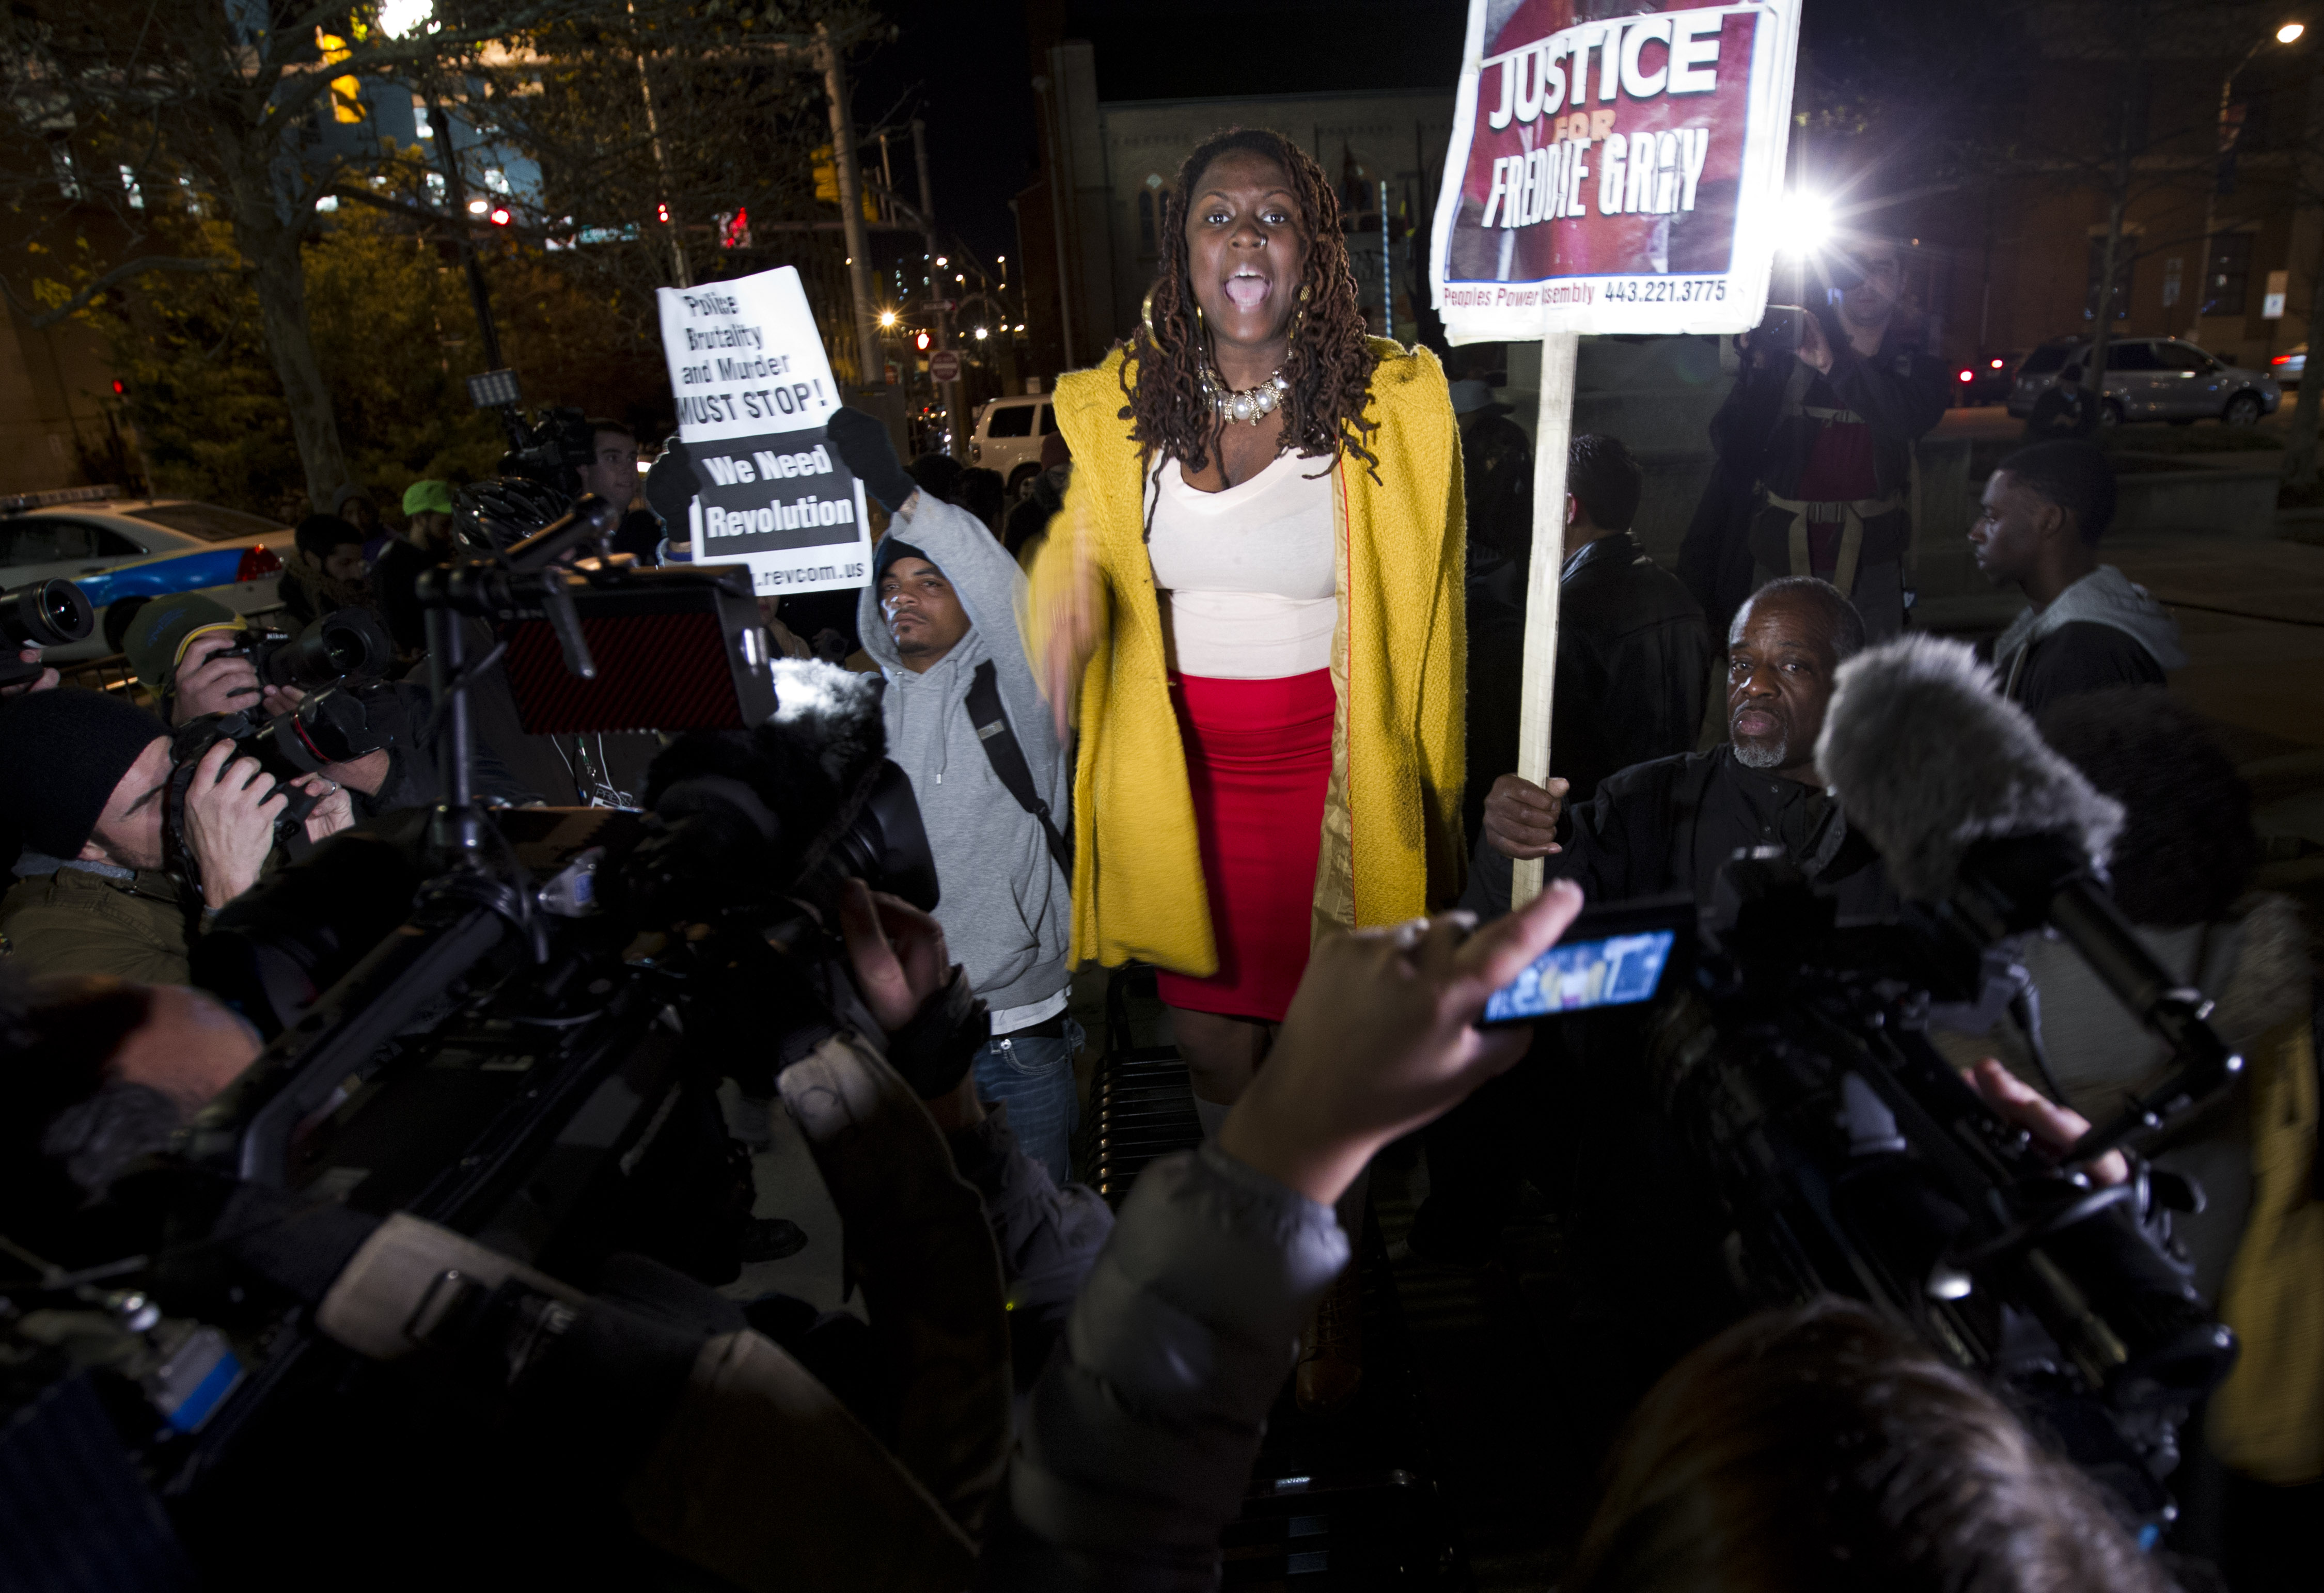 A demonstrator protests outside of the courthouse in response to a hung jury and mistrial for Officer William Porter, one of six Baltimore city police officers charged in connection to the death of Freddie Gray, Wednesday, Dec. 16, 2015, in Baltimore Md.  (AP Photo/Jose Luis Magana)